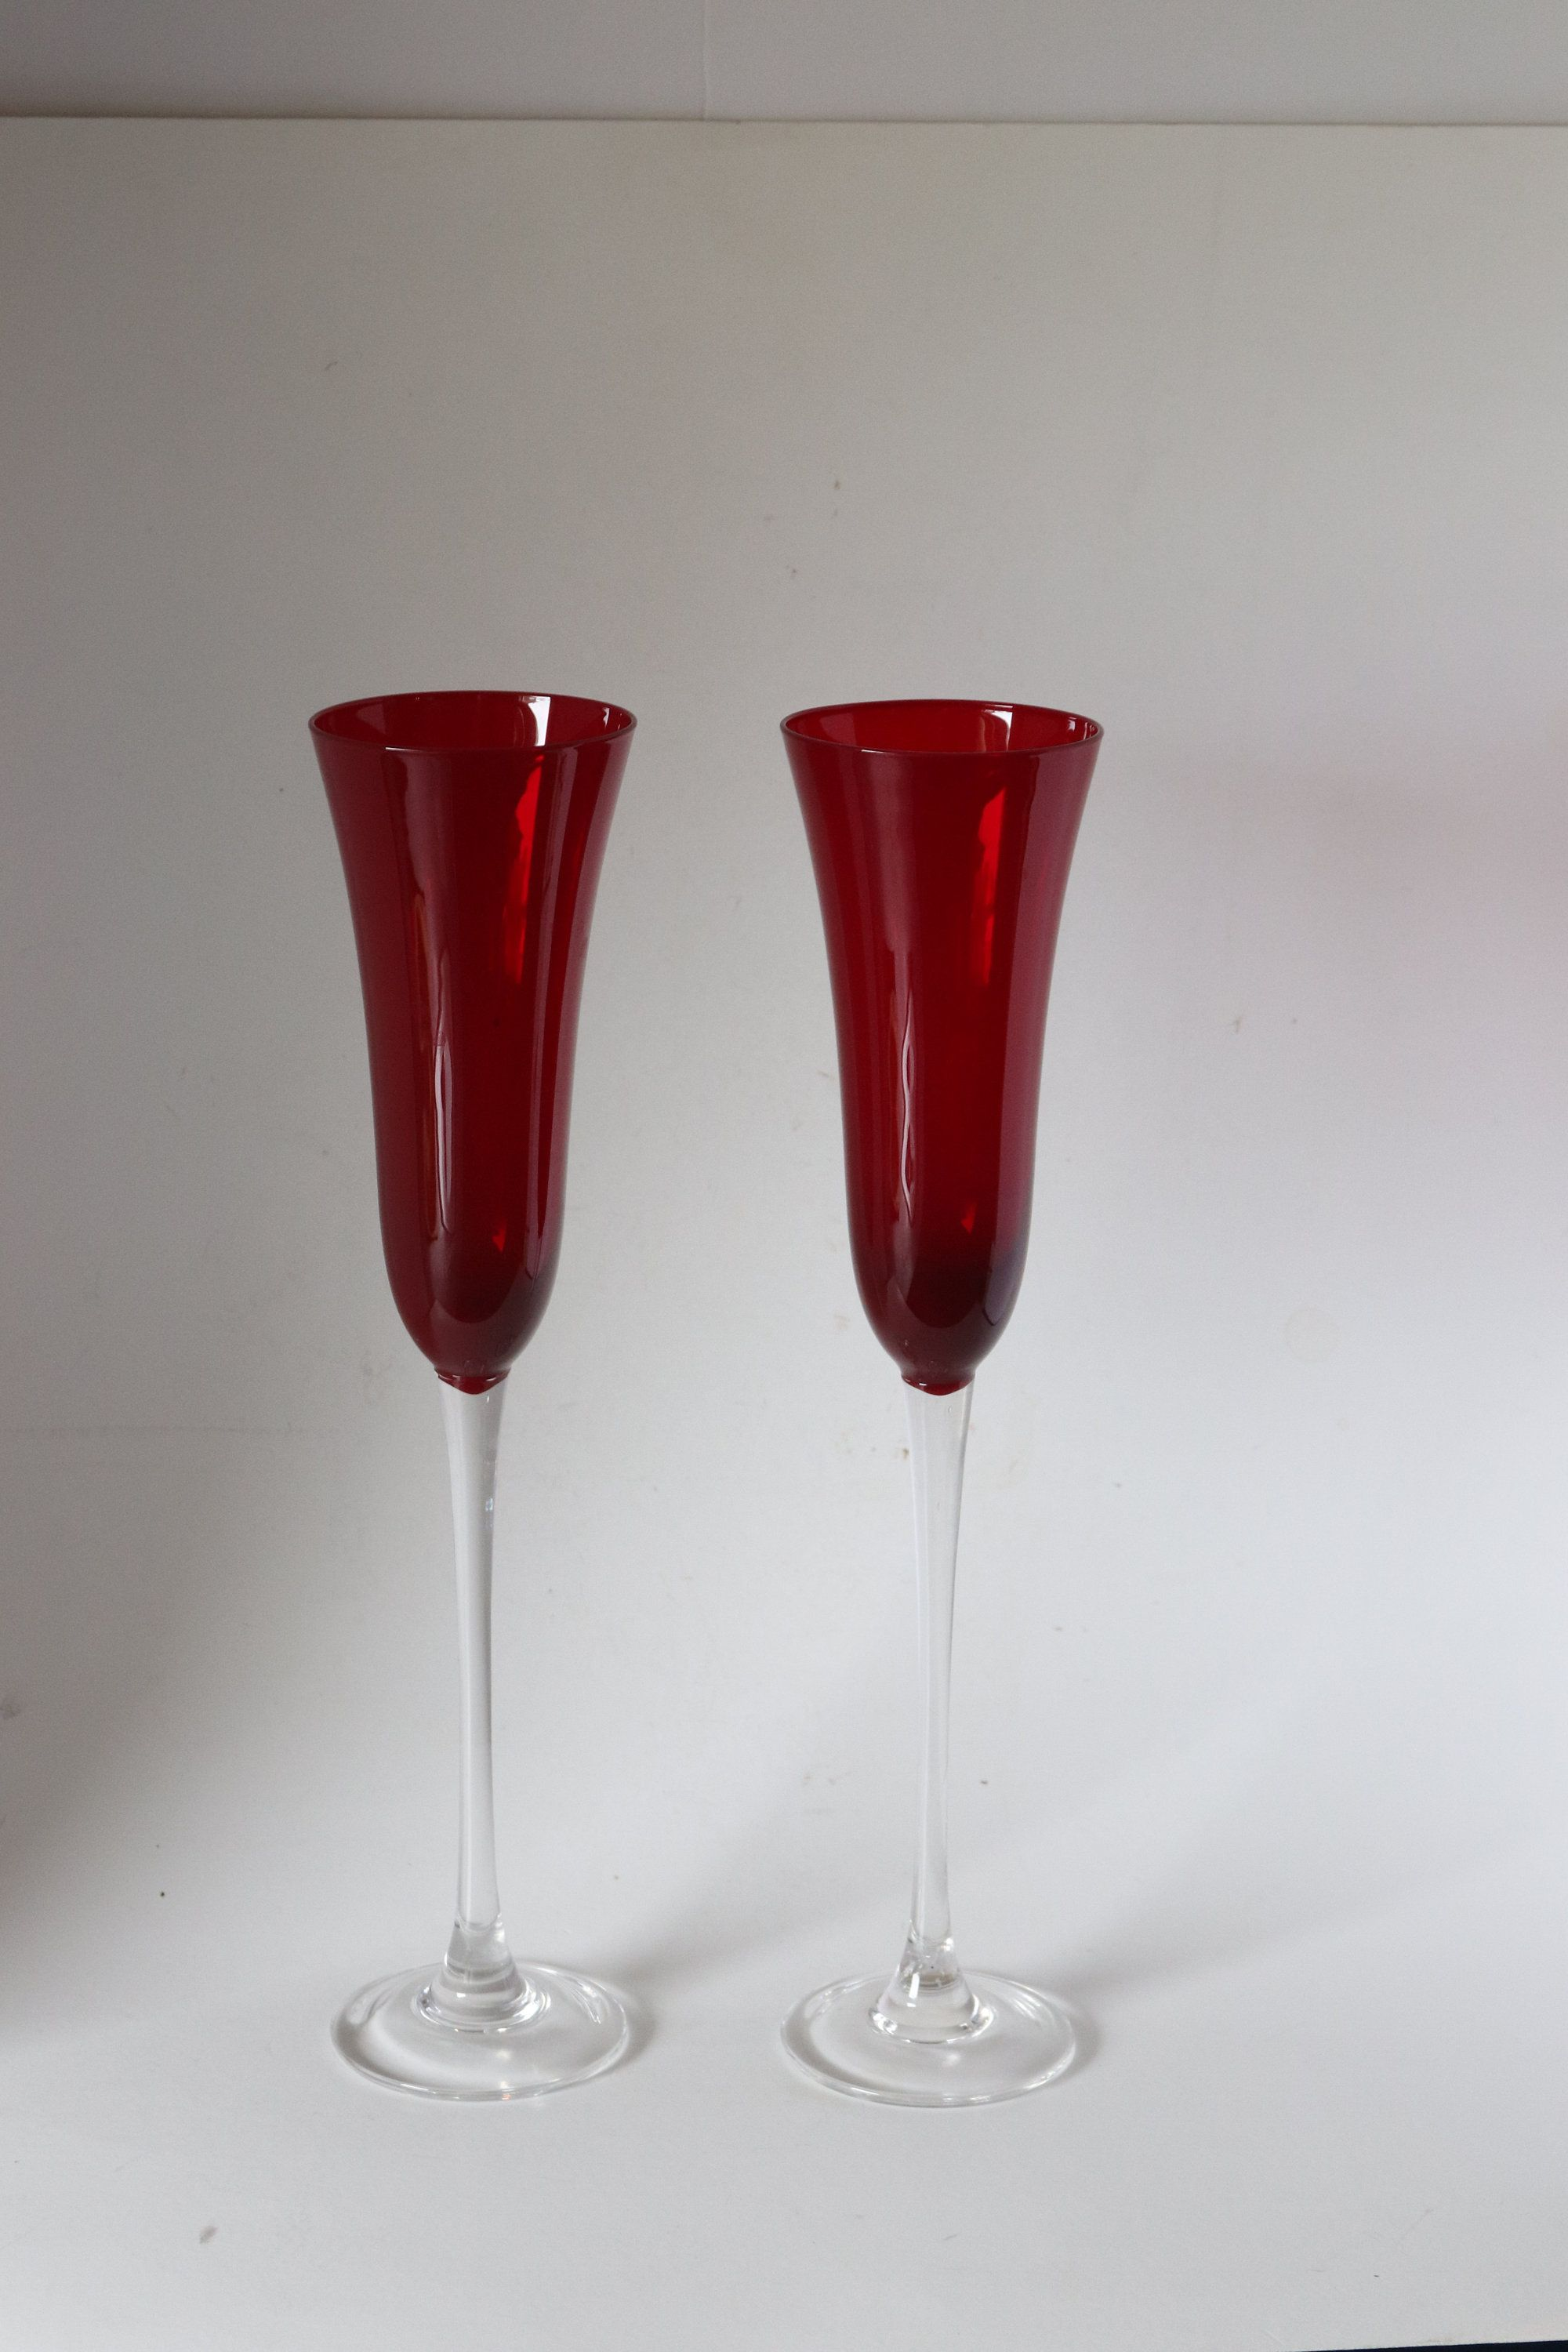 Ruby Red Wine Champagne Flutes Tall Wine Glasses Ruby Red In Color In 2020 Tall Wine Glasses Wine Flute Red Champagne